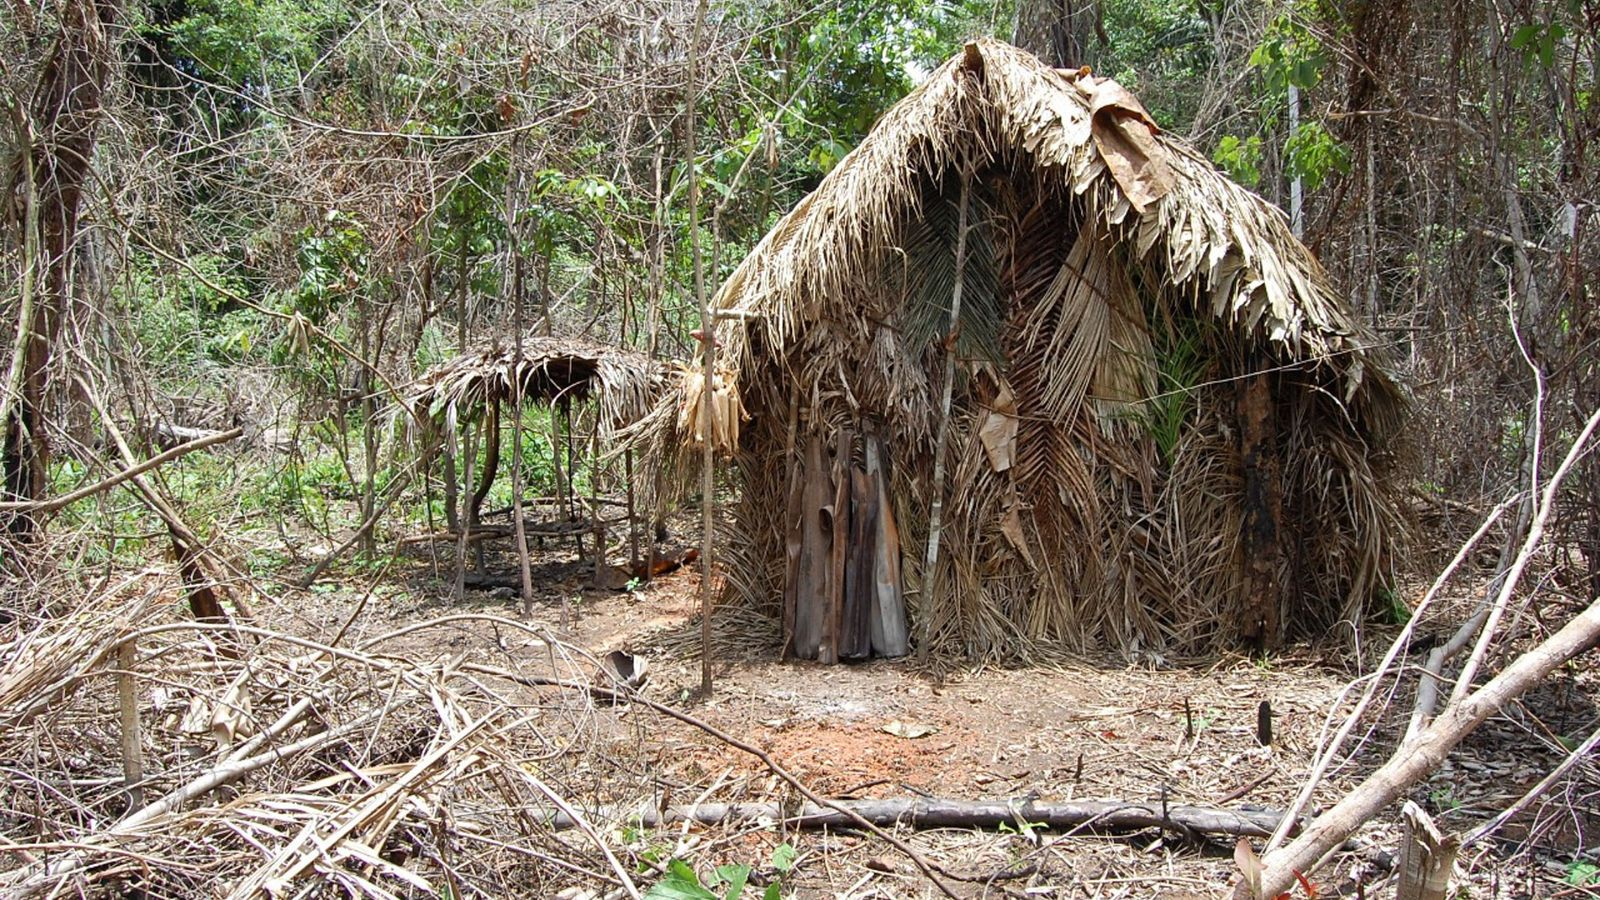 One of the huts the lone survivor builds for himself.